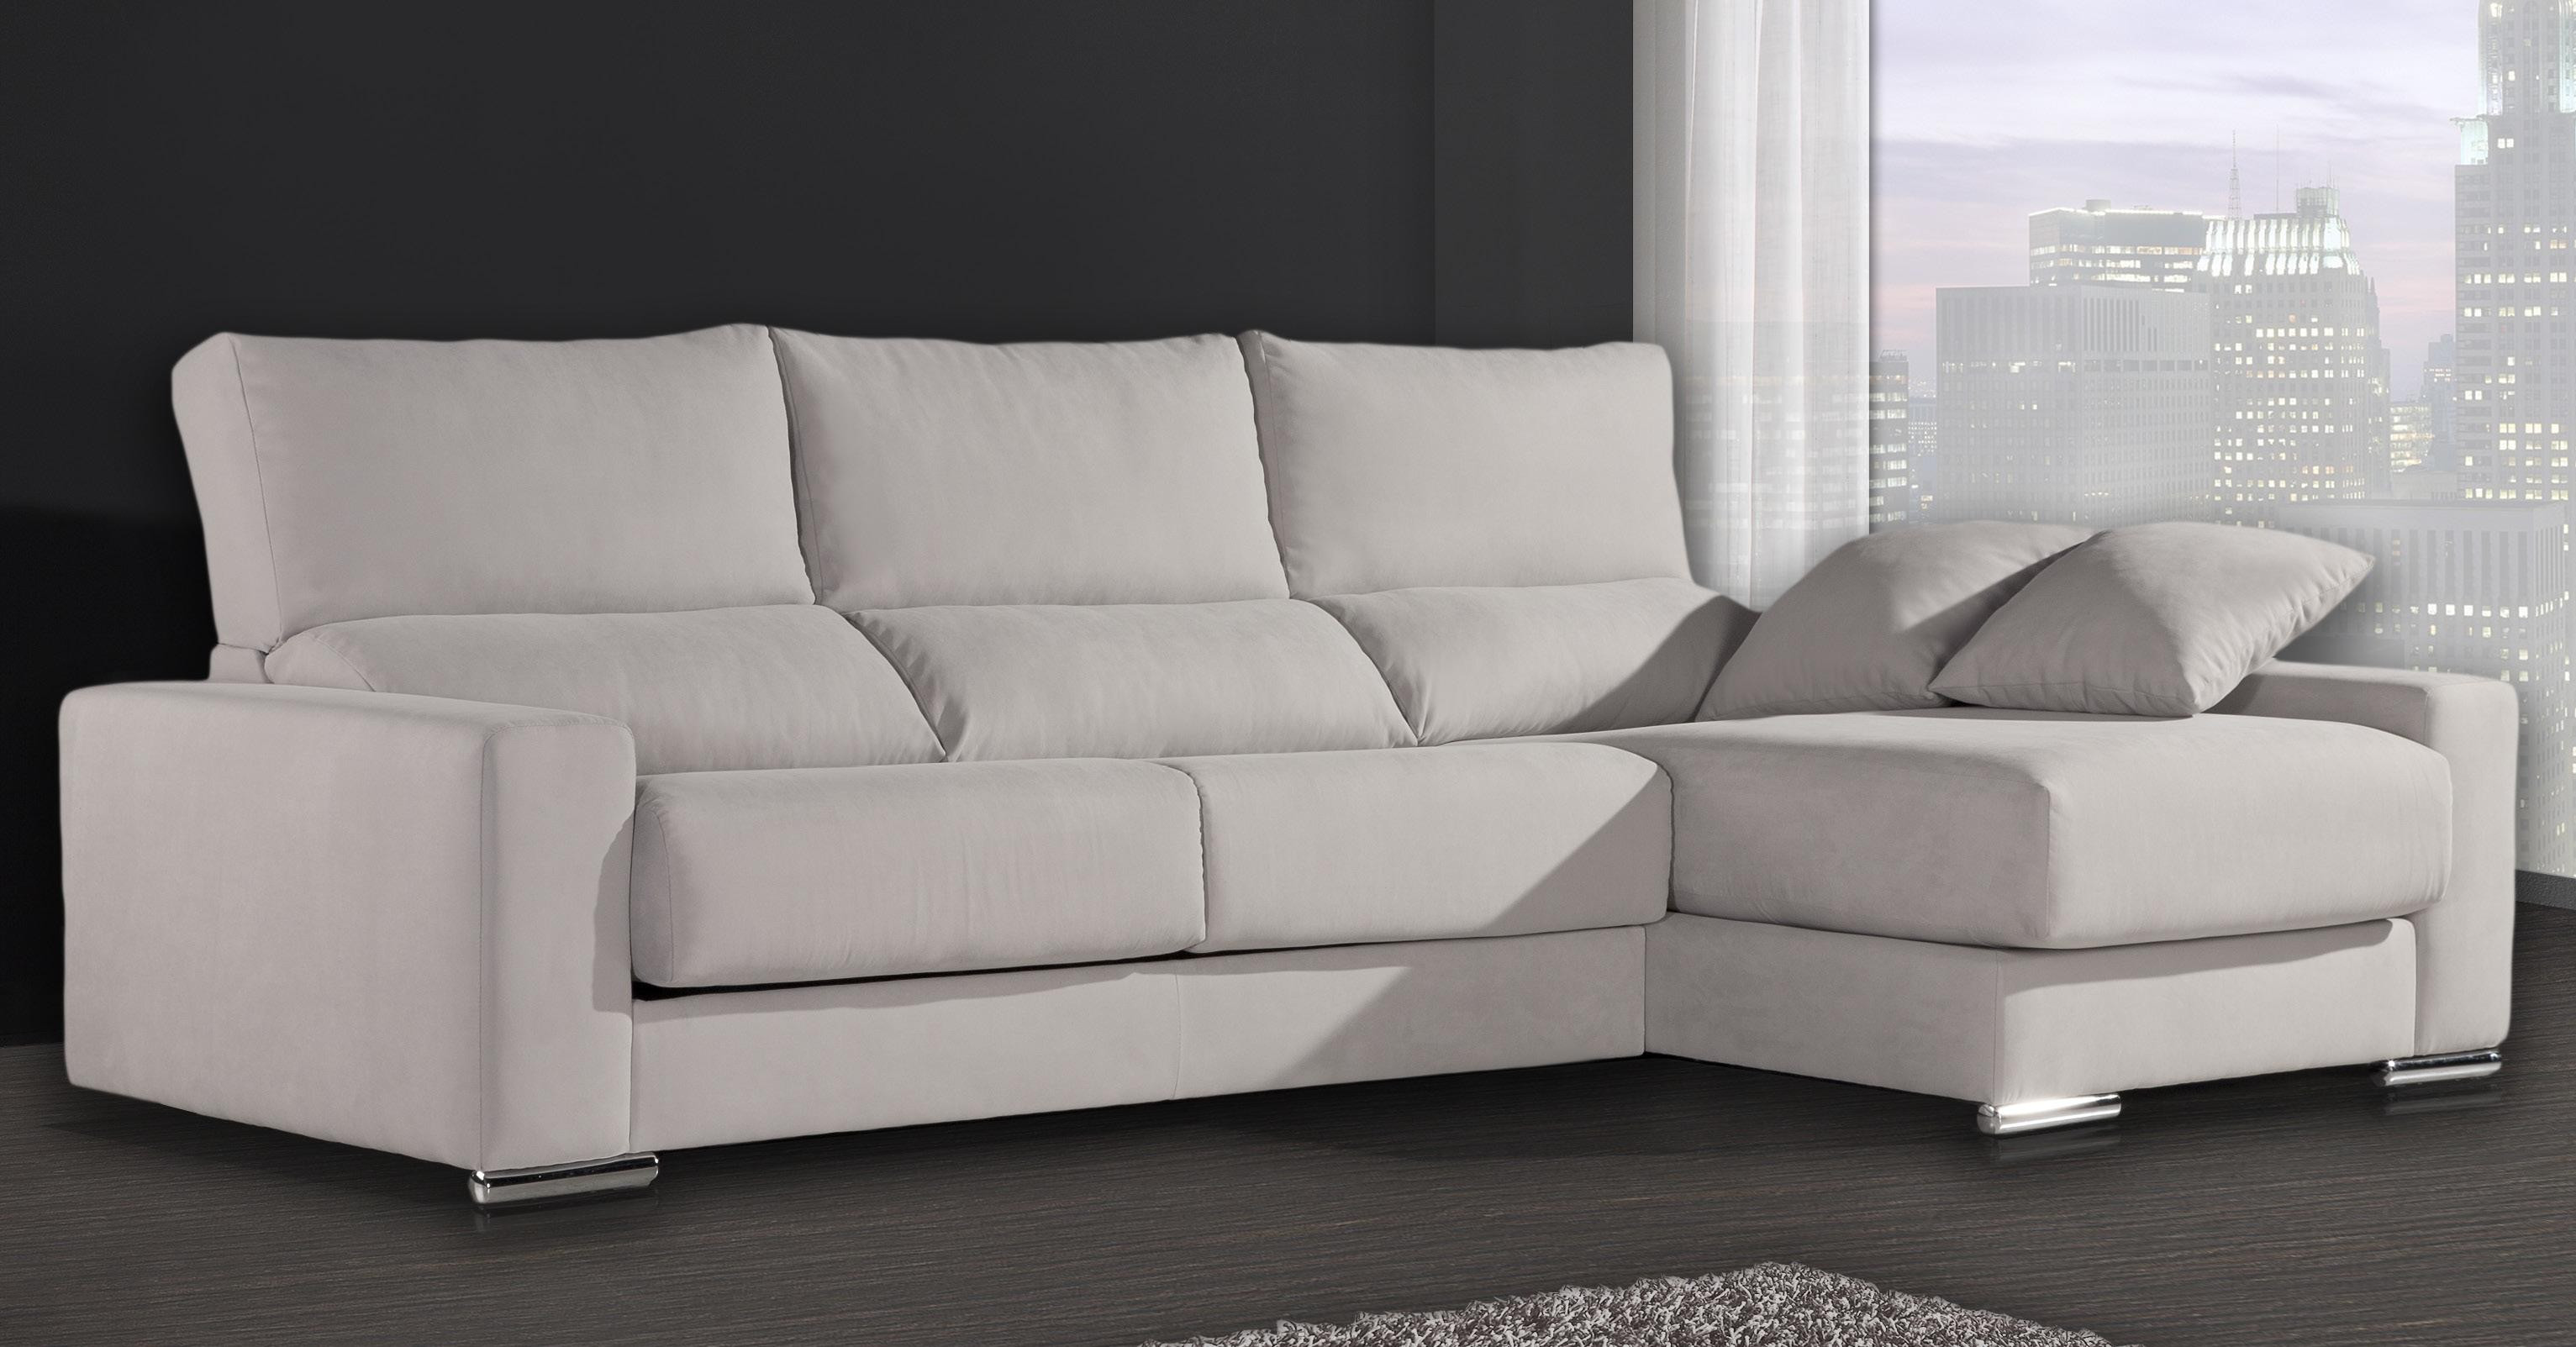 Sofa Chaise Longue Barato Adorable sofas Y Chaise Longue Baratos Of 49  Mejor sofa Chaise Longue Barato